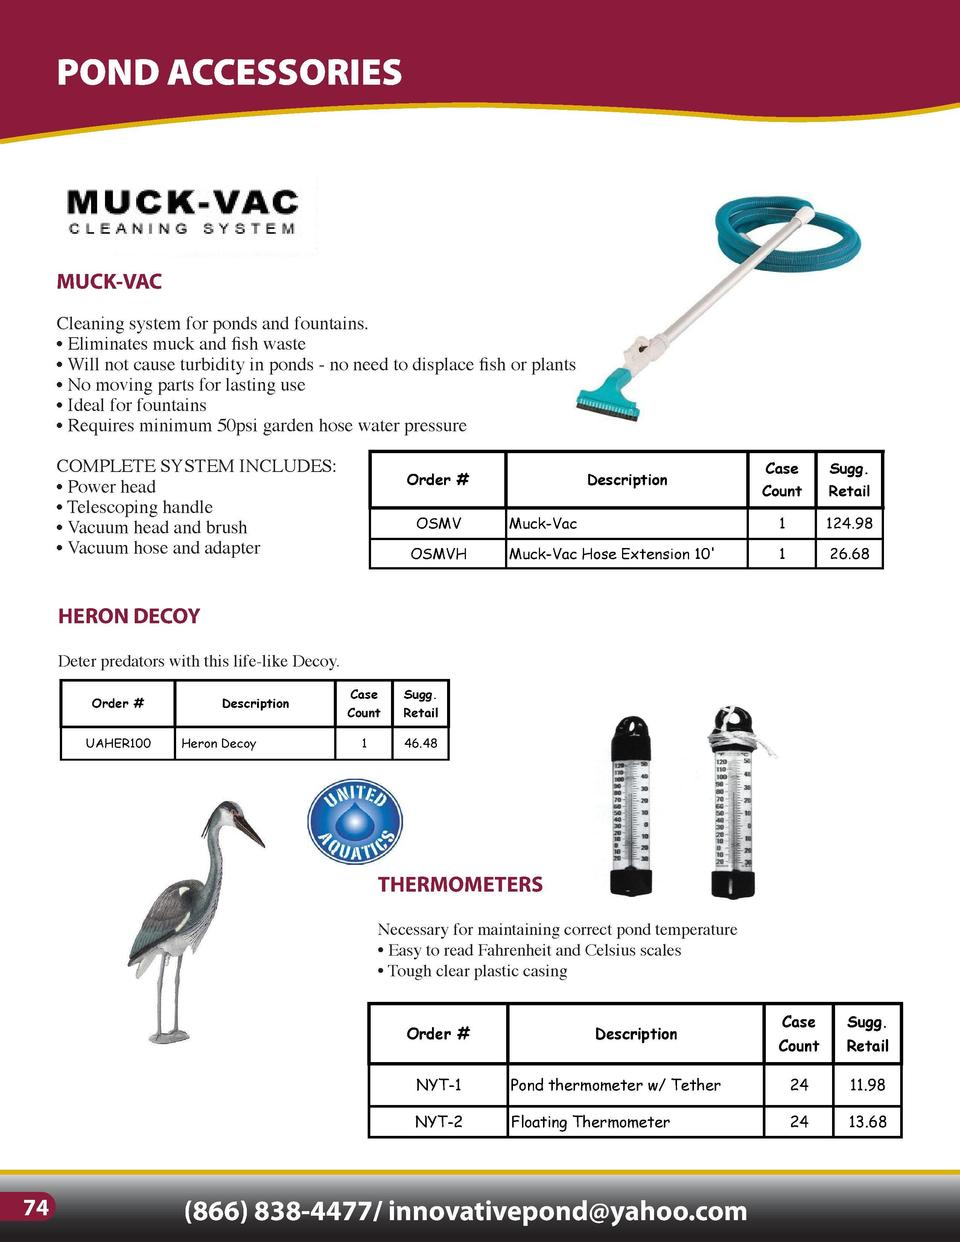 POND ACCESSORIES  ELECTRICAL ACCESSORIES  MUCK-VAC  POWER CONTROL CENTER  Cleaning system for ponds and fountains.     Eli...